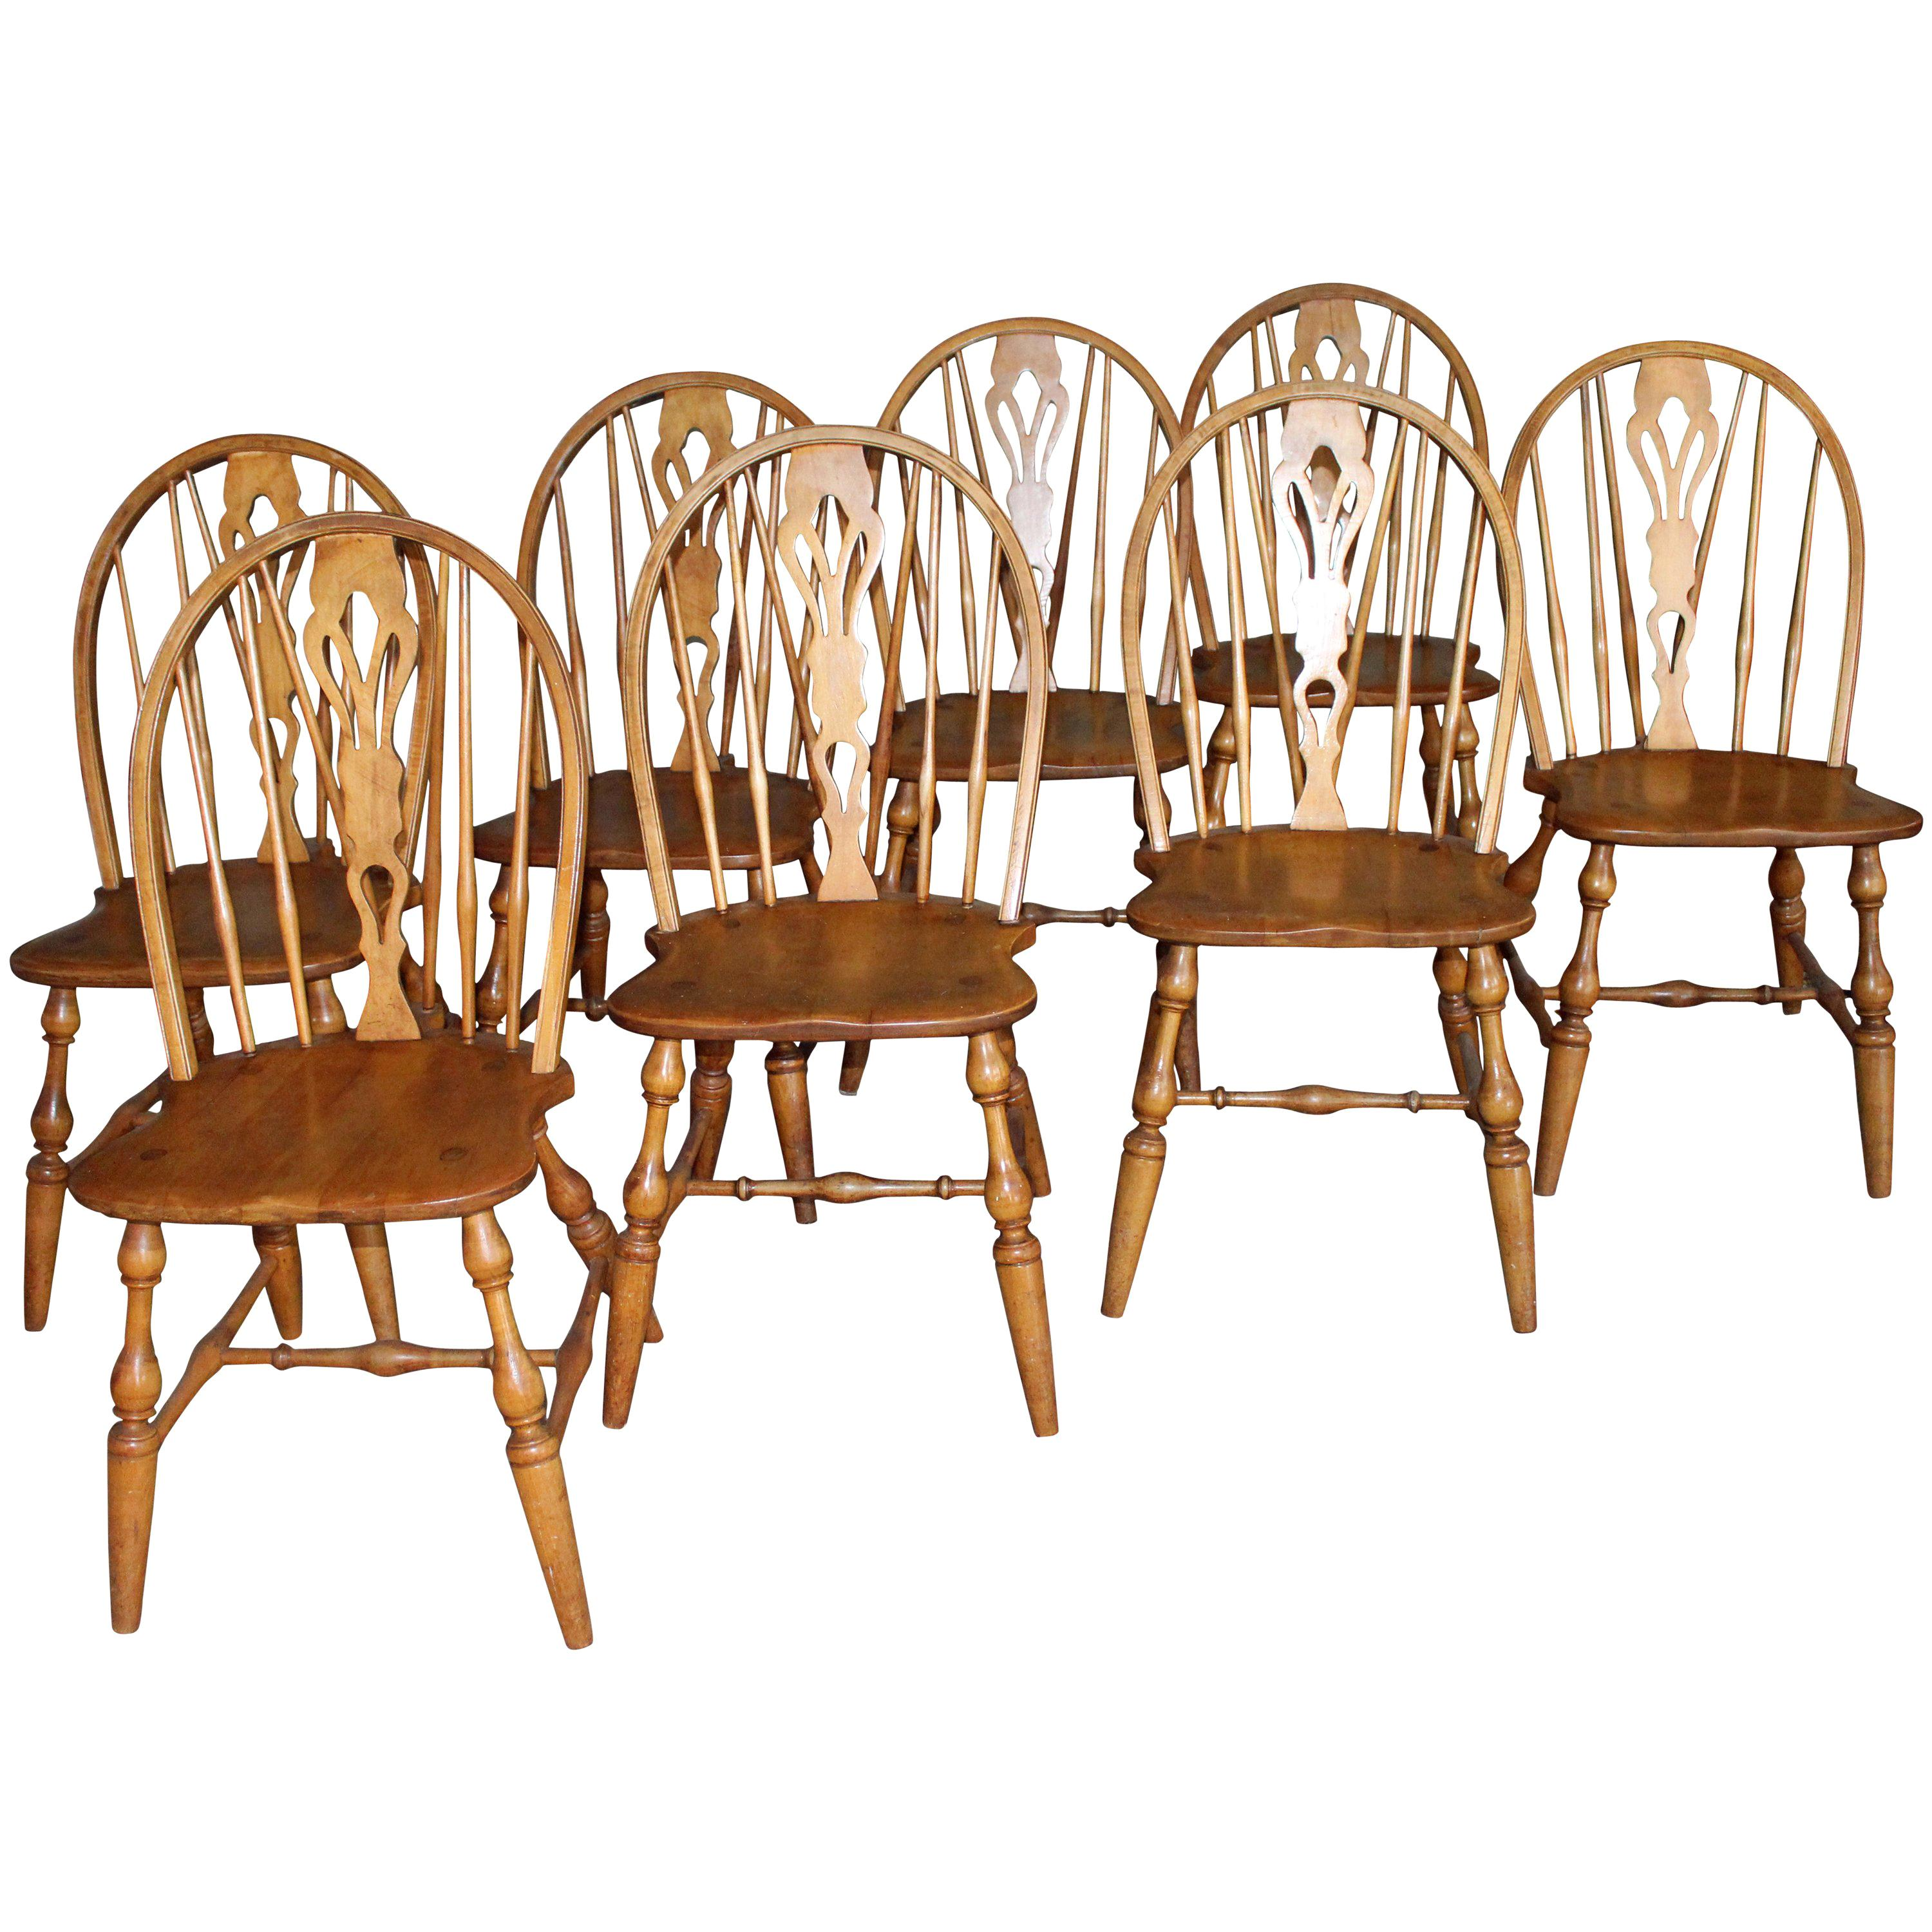 Antique English Windsor Bow-Brace Back Dining Chairs with Decorative Splat